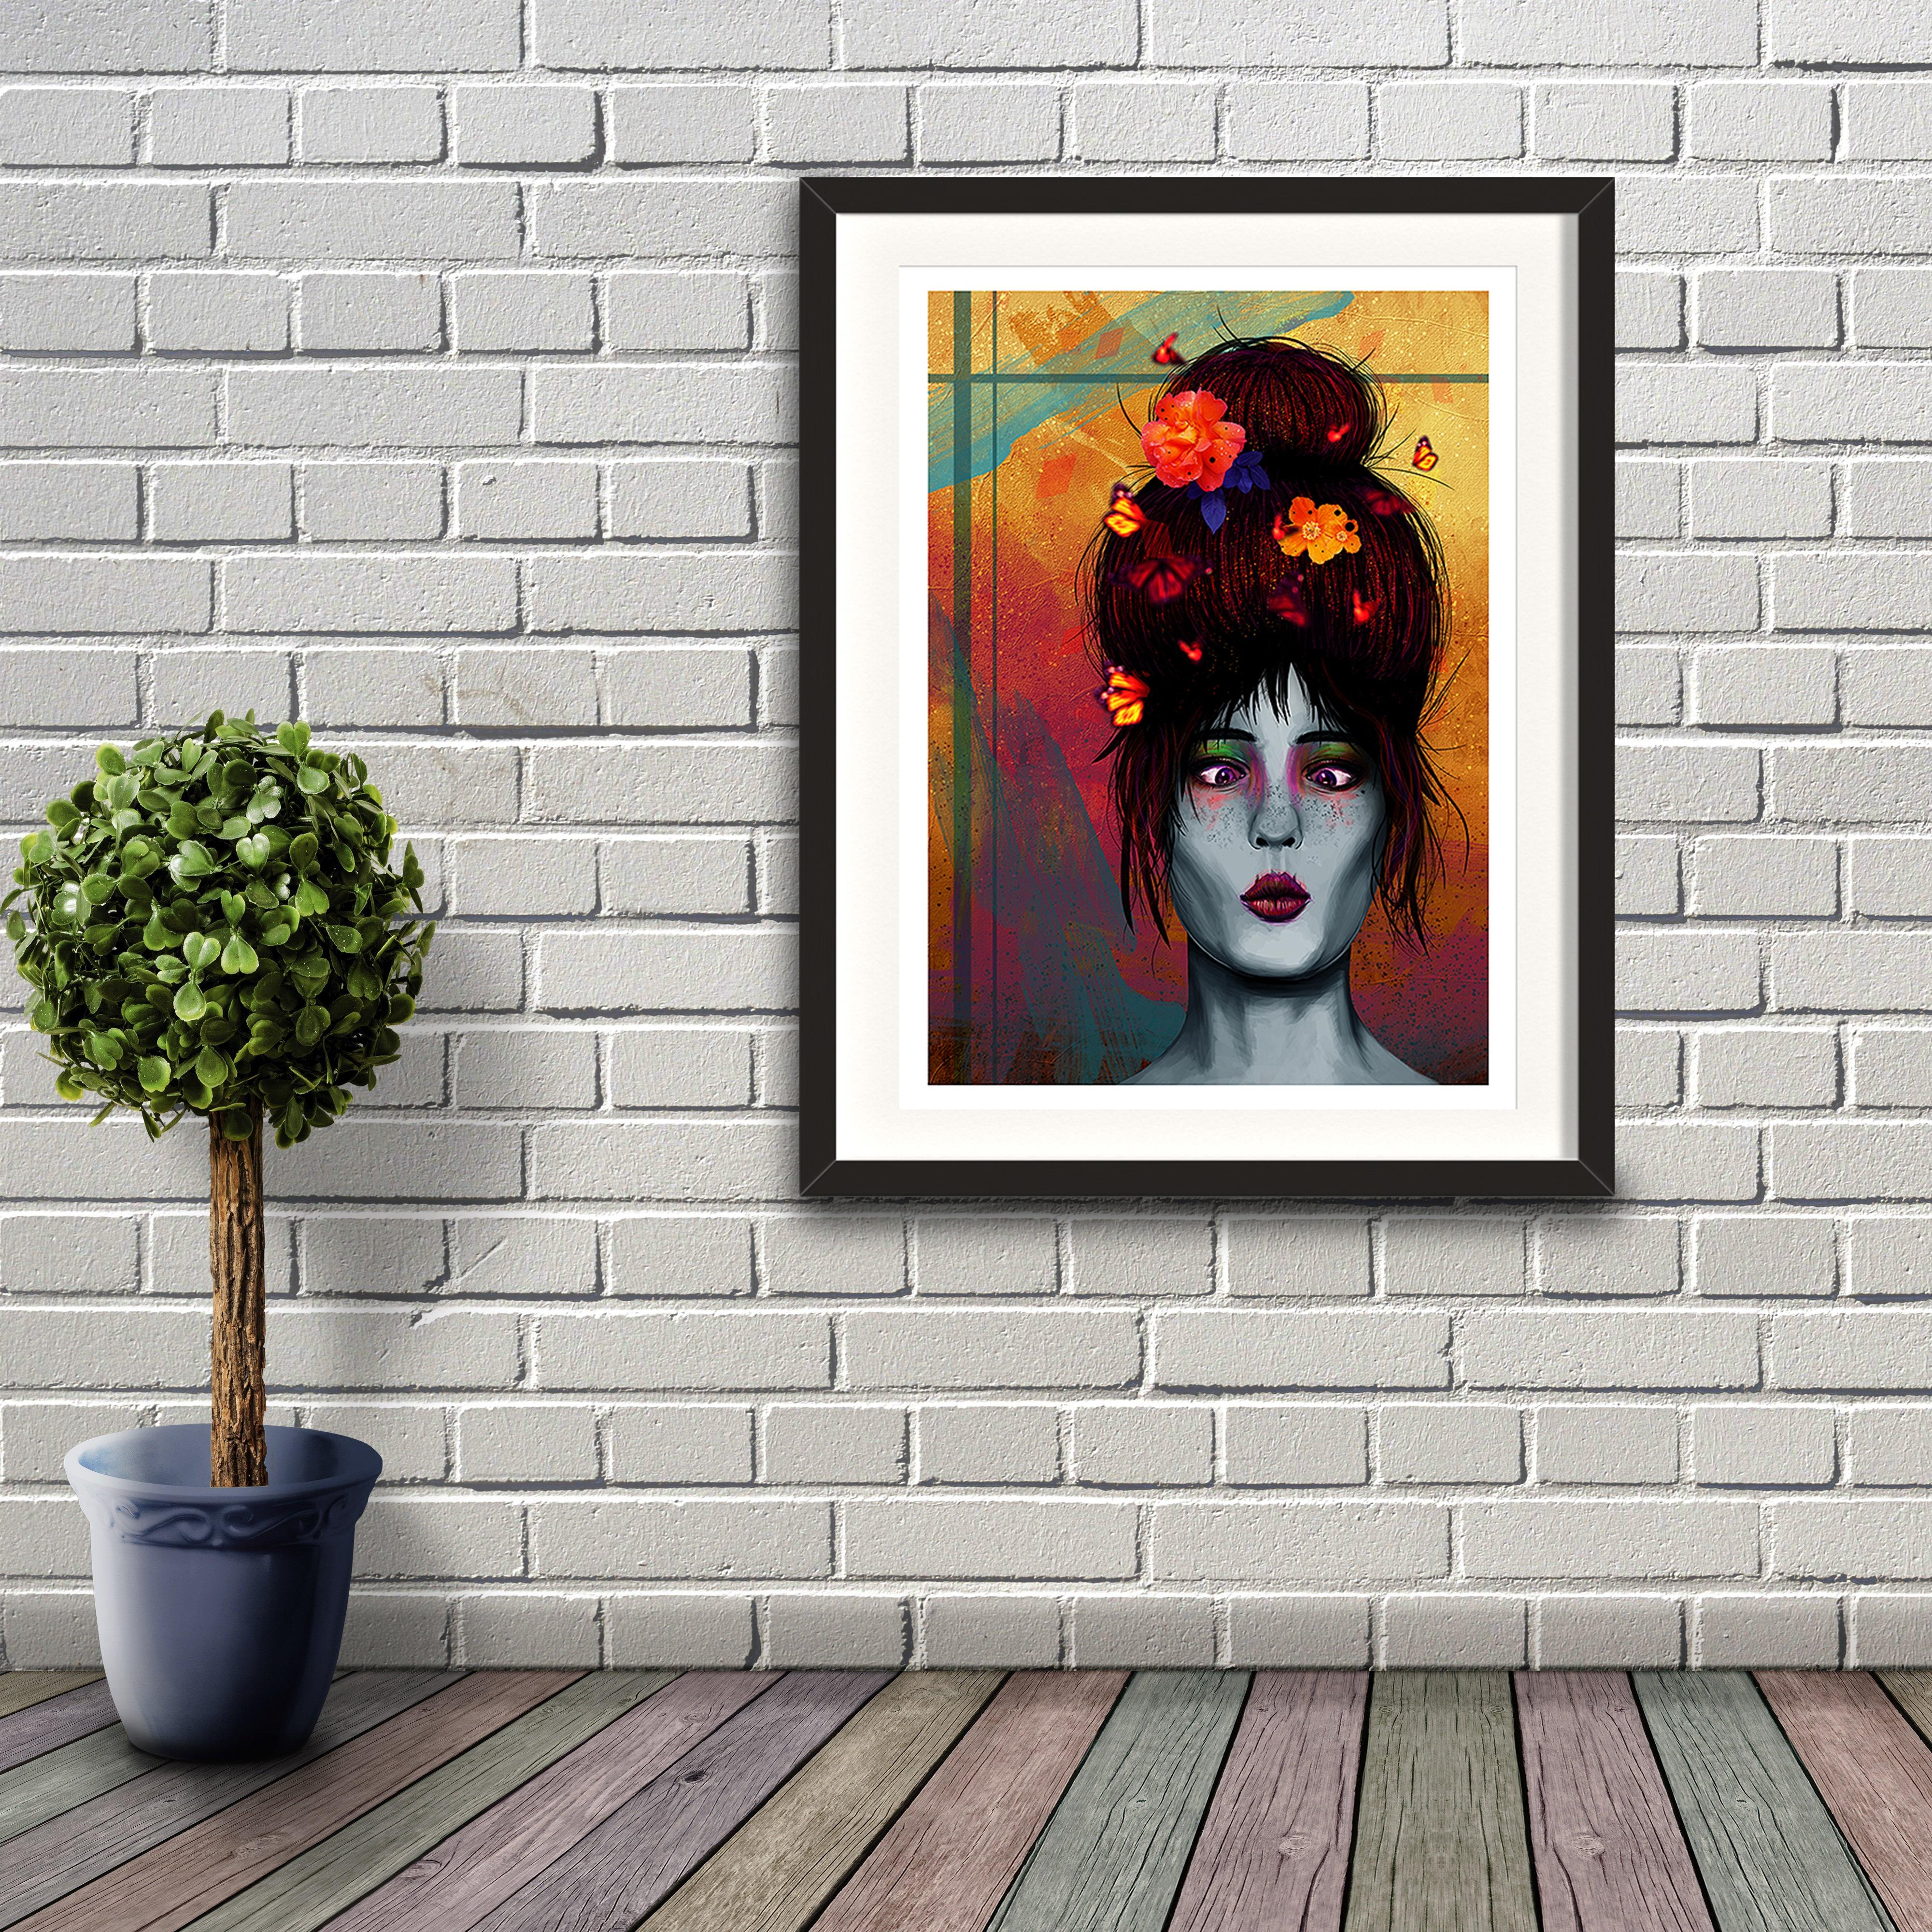 A digital painting called Butterfly Bonce by Lily Bourne showing a young lady with her hair and butterflies around her head. Her eyes are crossed as she looks at the butterflies around her. Artwork shown in a black frame on a brick wall.